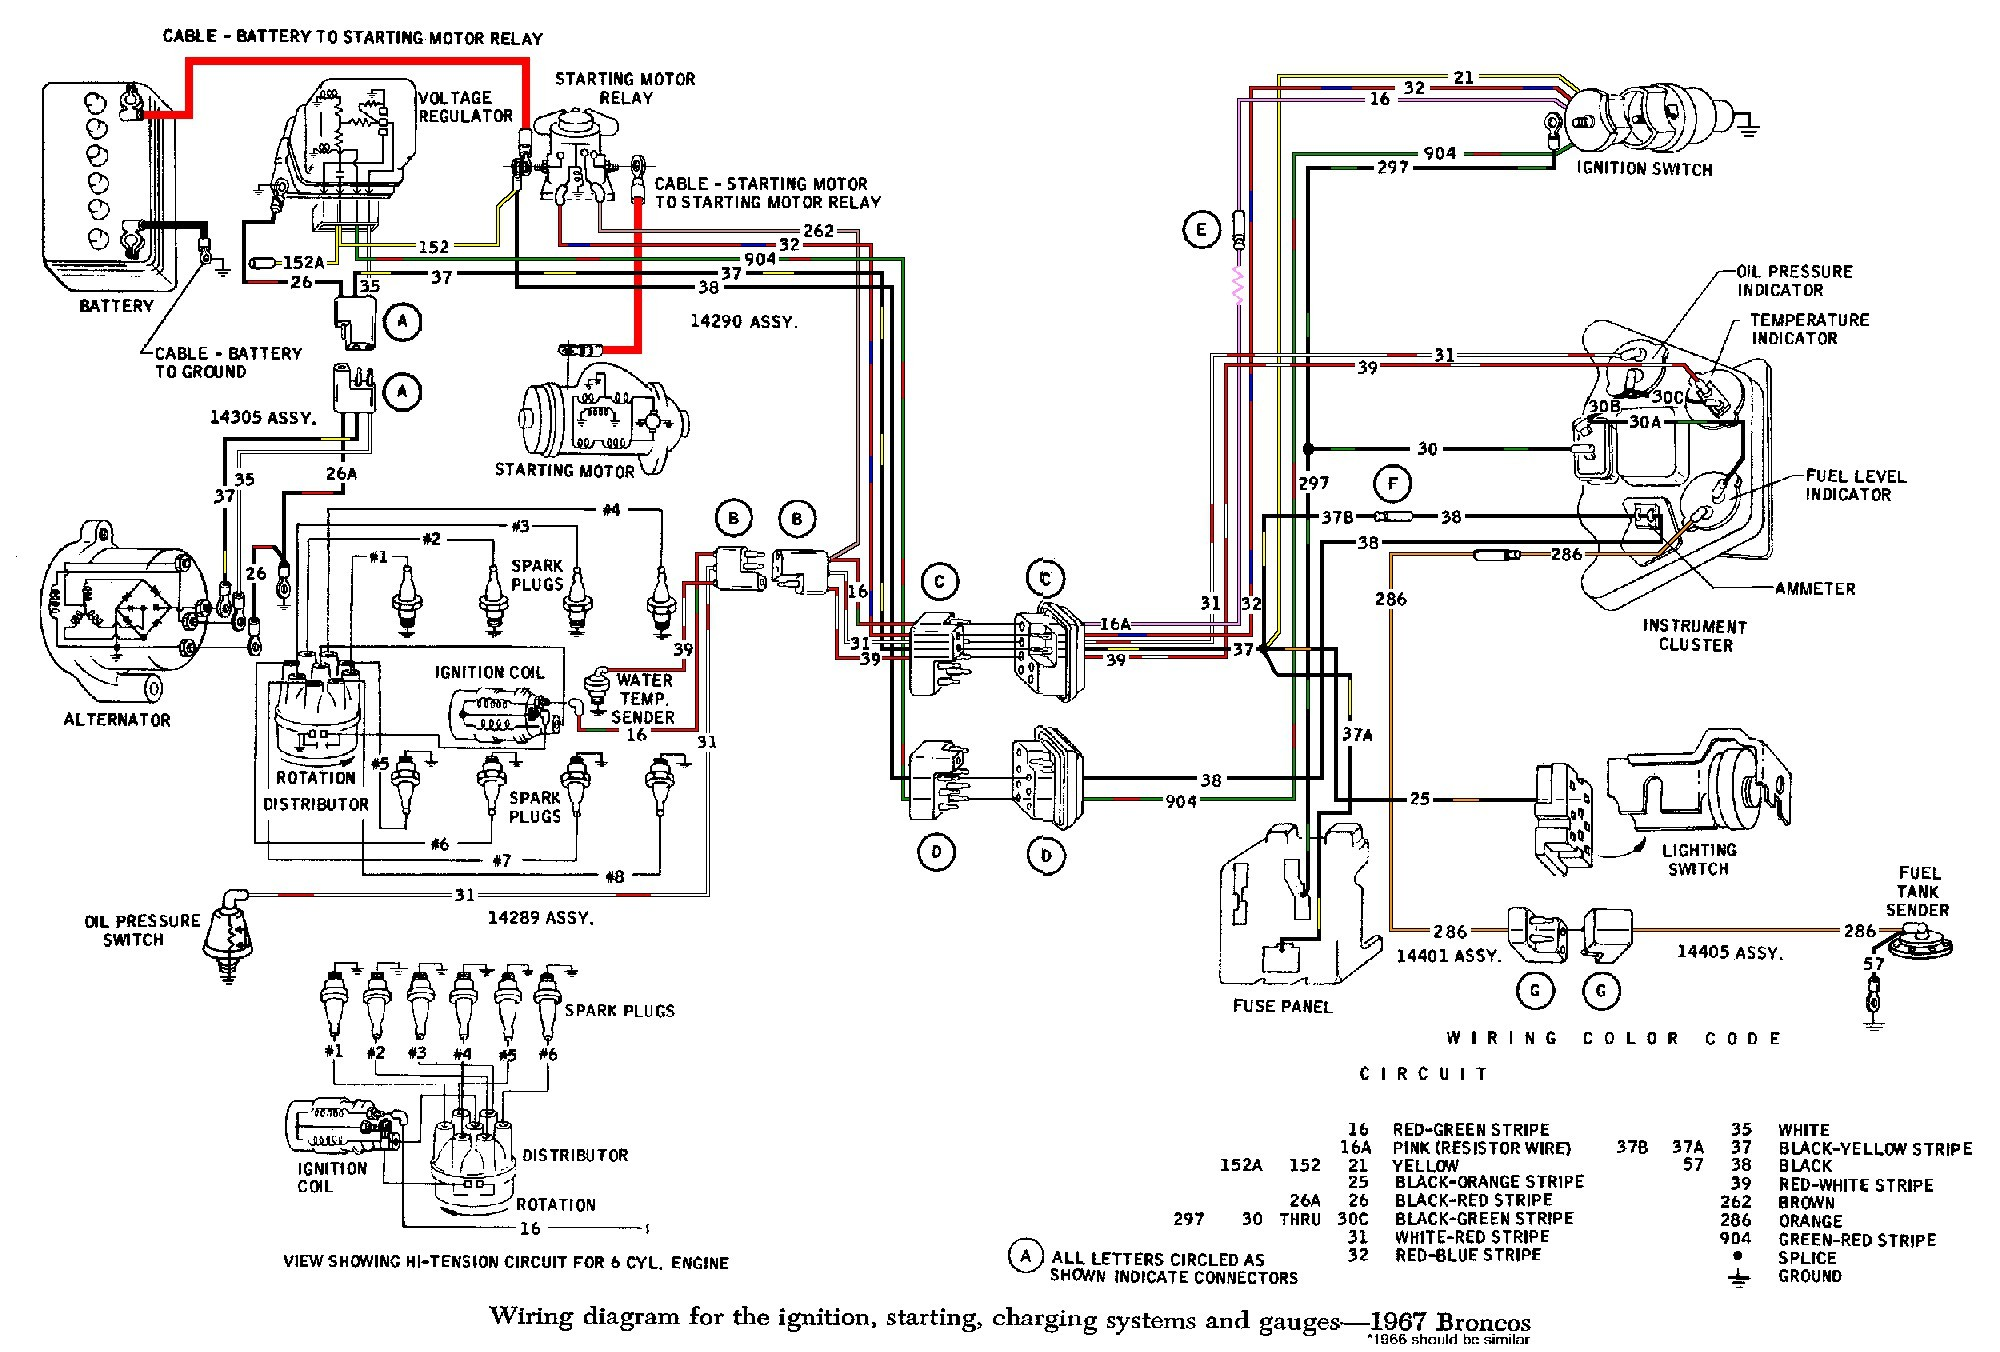 Jvc Kd Sr40 Wiring Diagram Schematic Diagrams R540 Early Bronco Inspirational Image S29